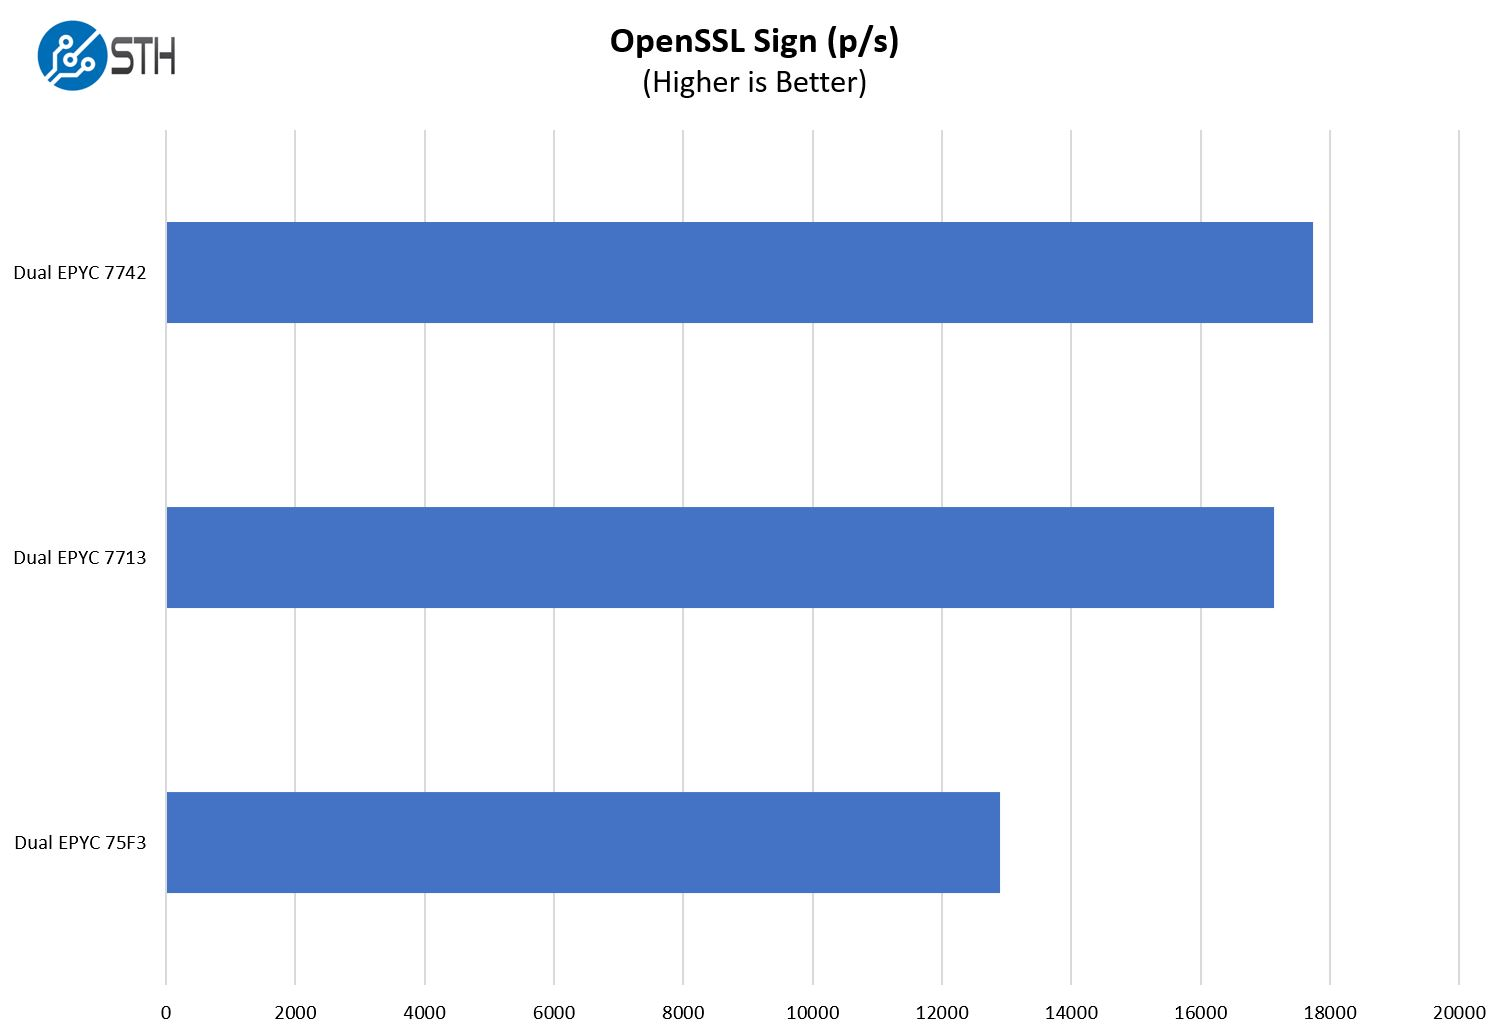 Supermicro AS 1024US TRT OpenSSL Sign Performance